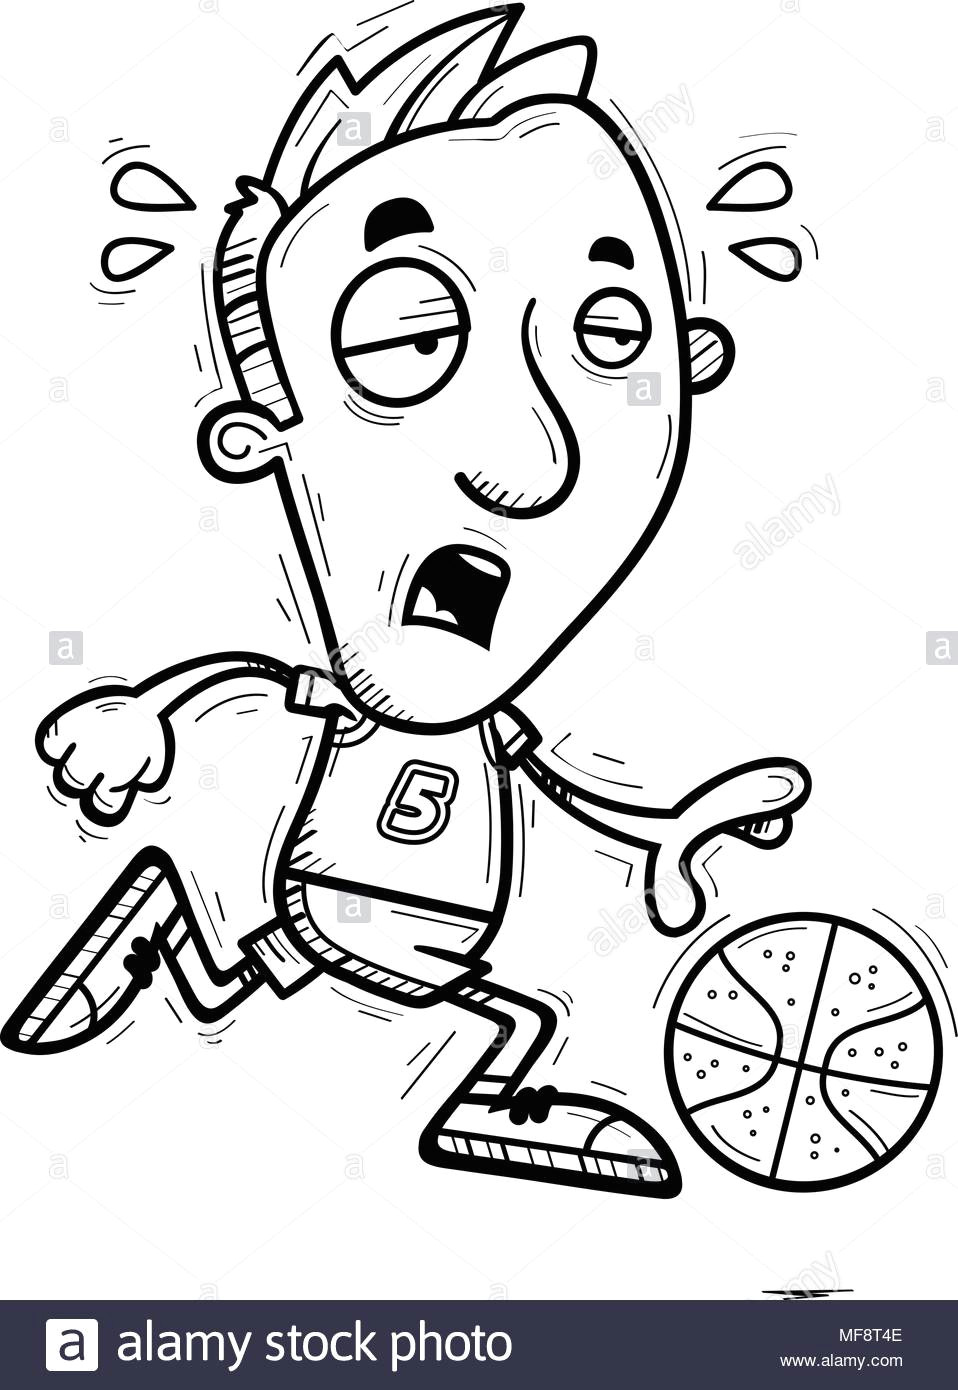 a cartoon illustration of a man basketball player running and looking exhausted